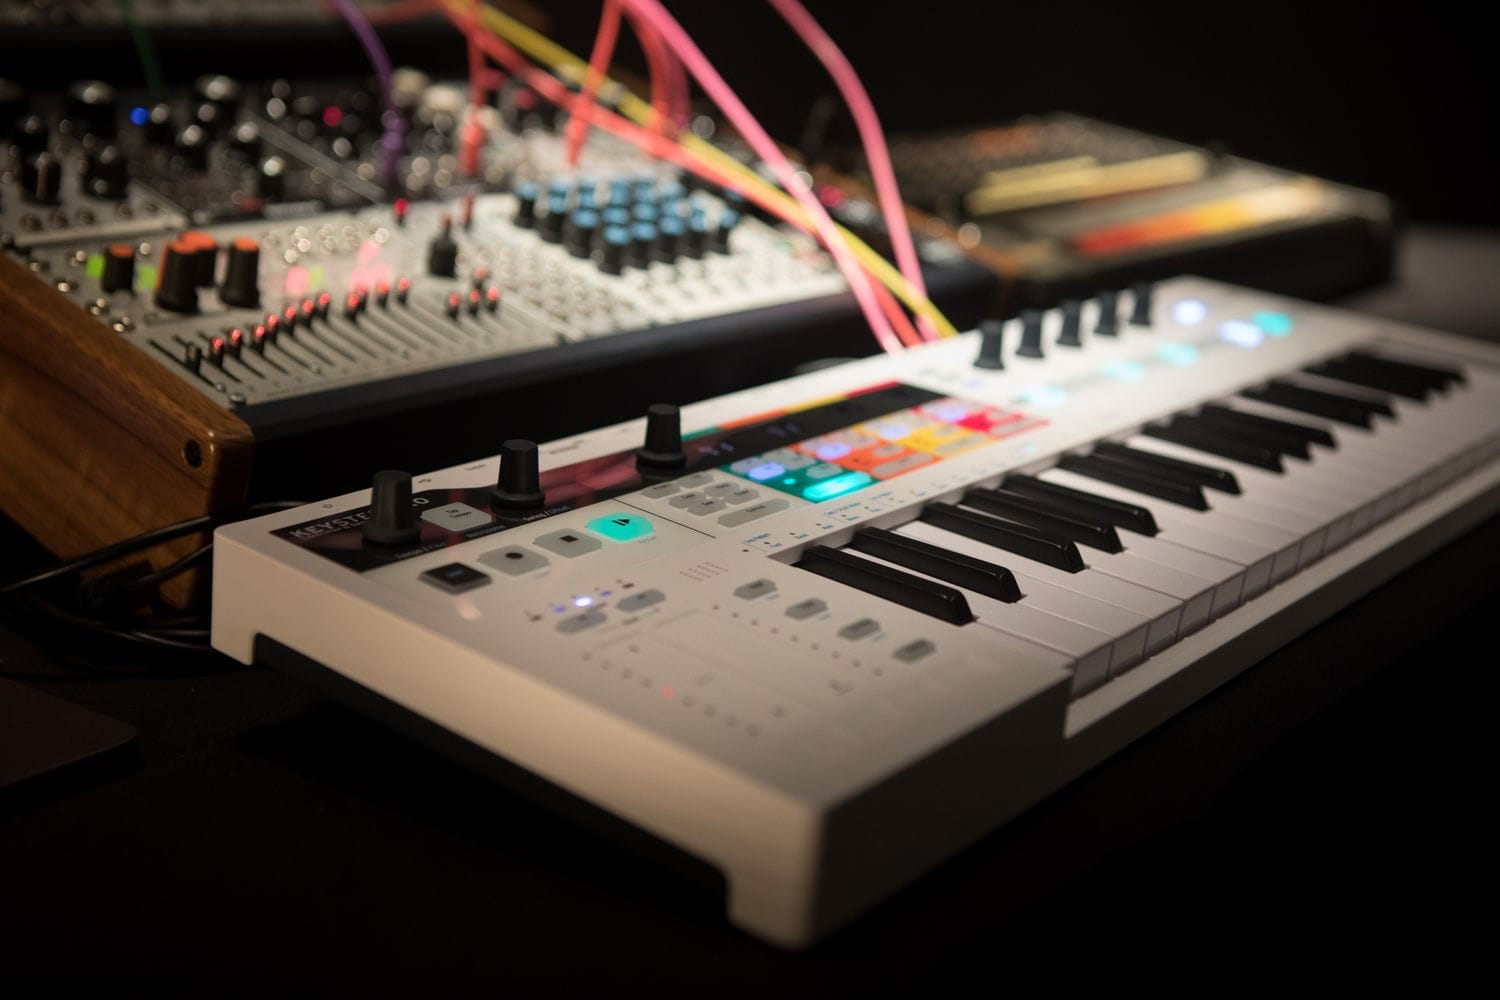 Live strategies for playing with Arturia KeyStep Pro and hardware: must-see videos - CDM Create Digital Music